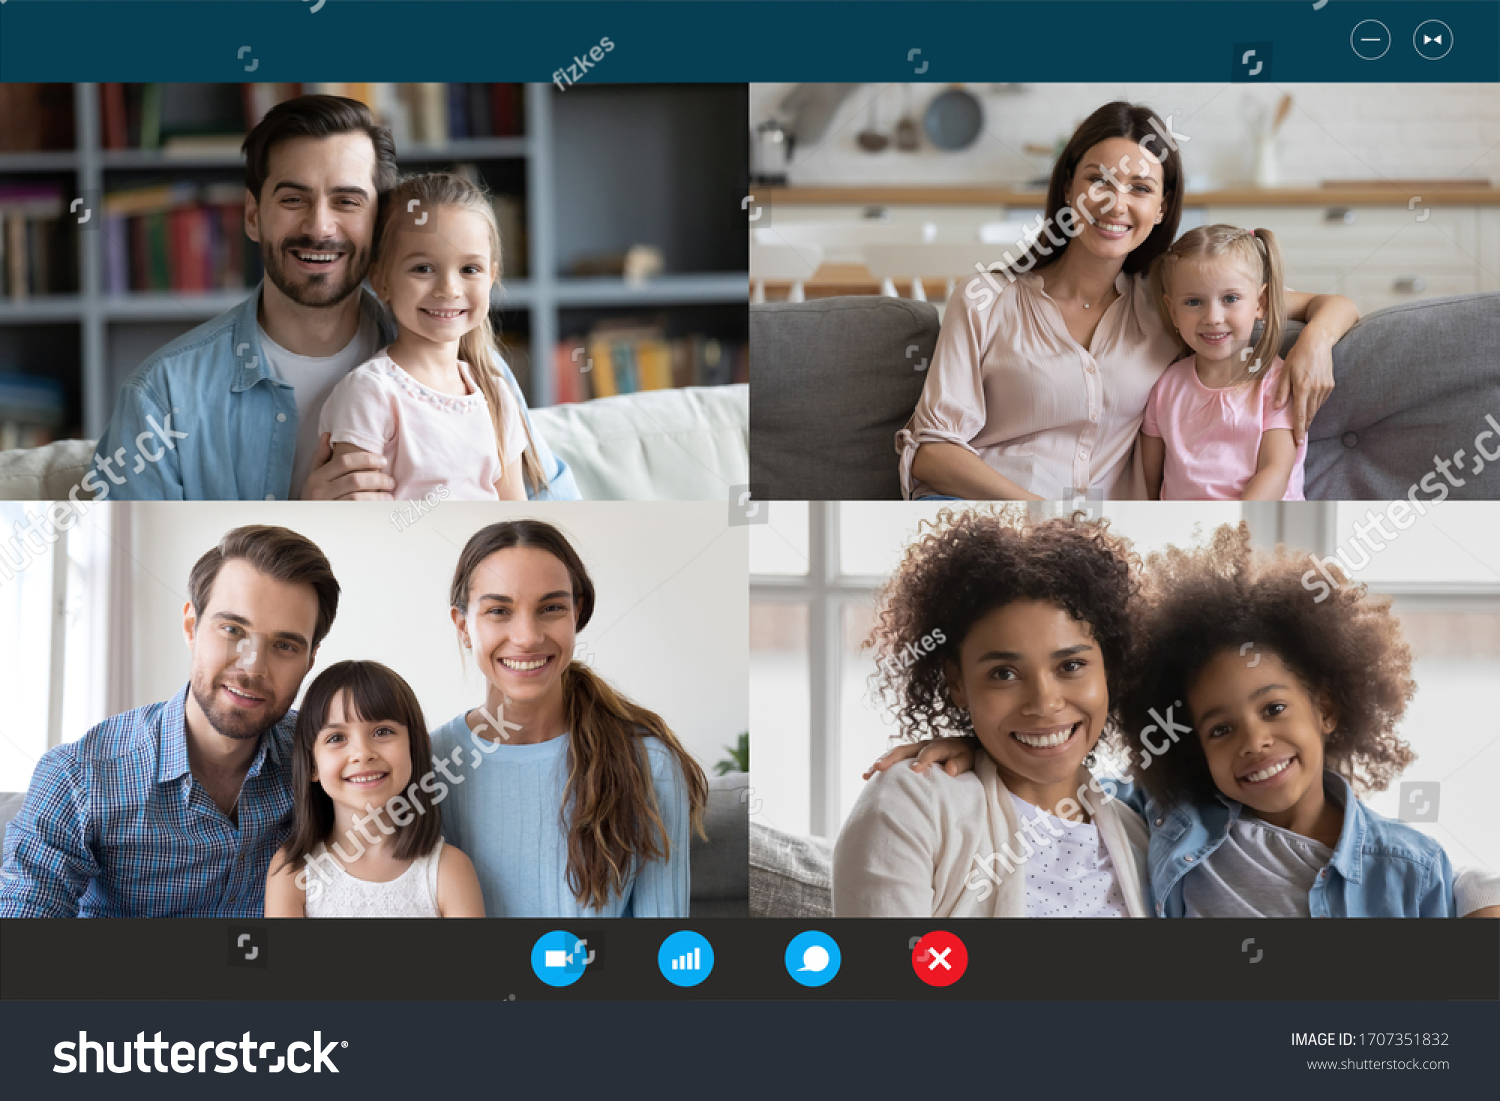 Modern technology, visual virtual on-line meeting using pc internet connection and webcam concept. Diverse families involved in video conference, laptop screen webcamera view, easy and convenient app #1707351832